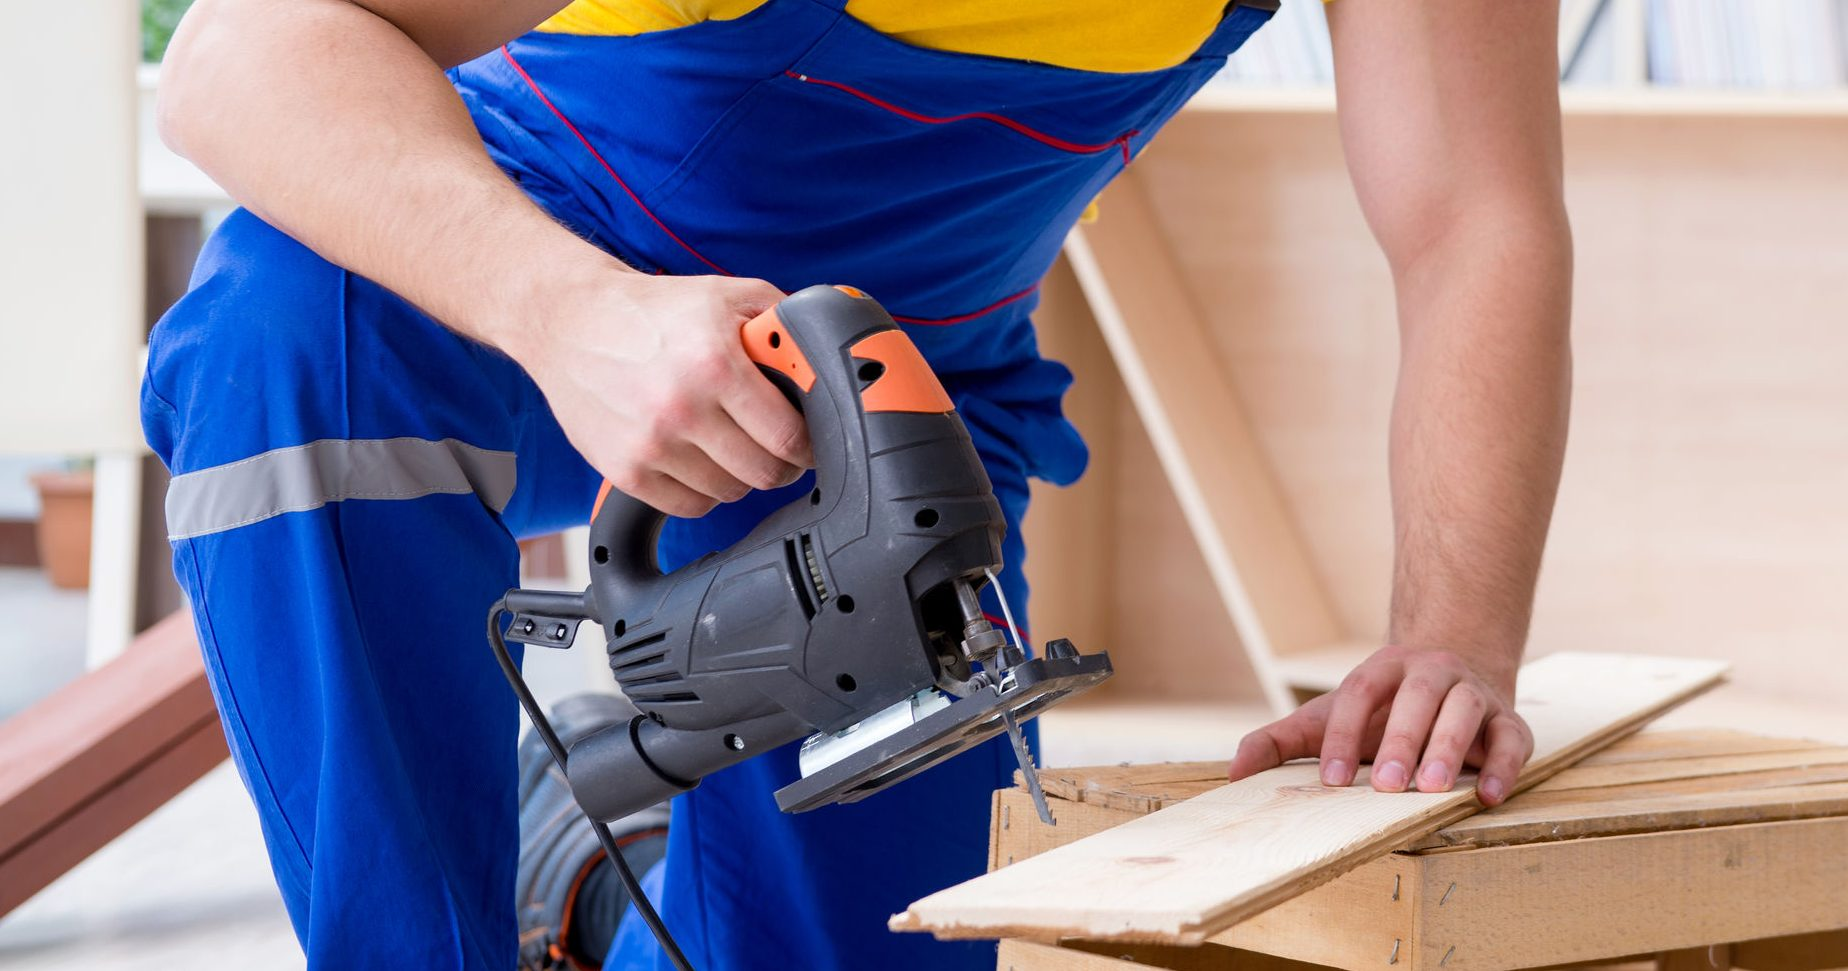 Repairman carpenter cutting sawing a wooden board with an electric power saw